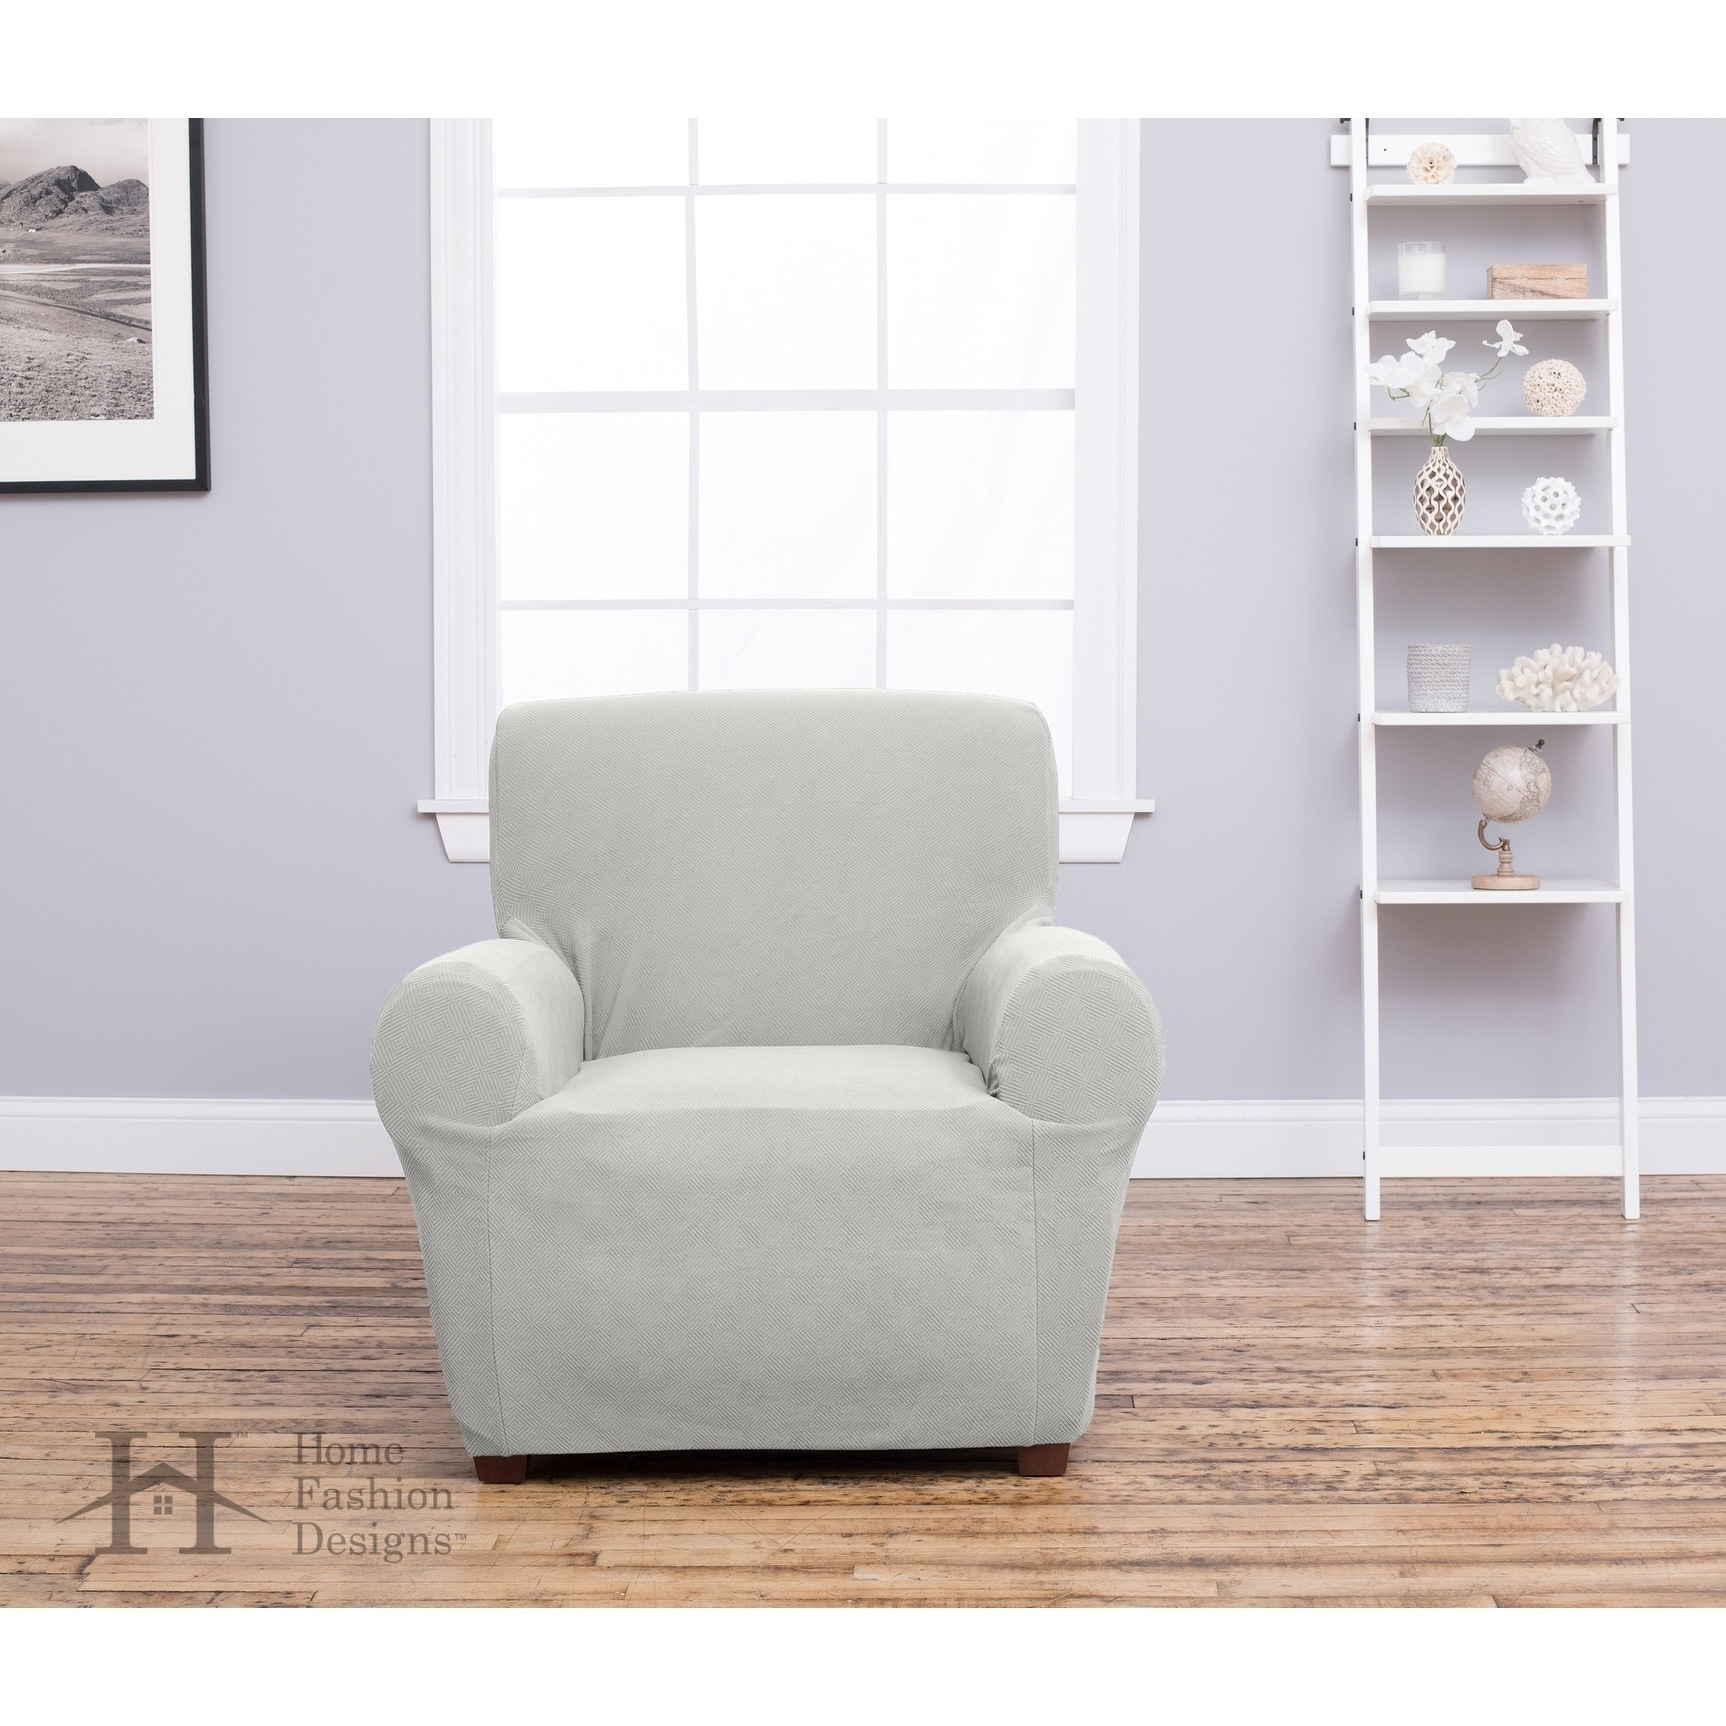 Home Fashion Designs Cambria Collection Heavyweight Stretch Chair ...